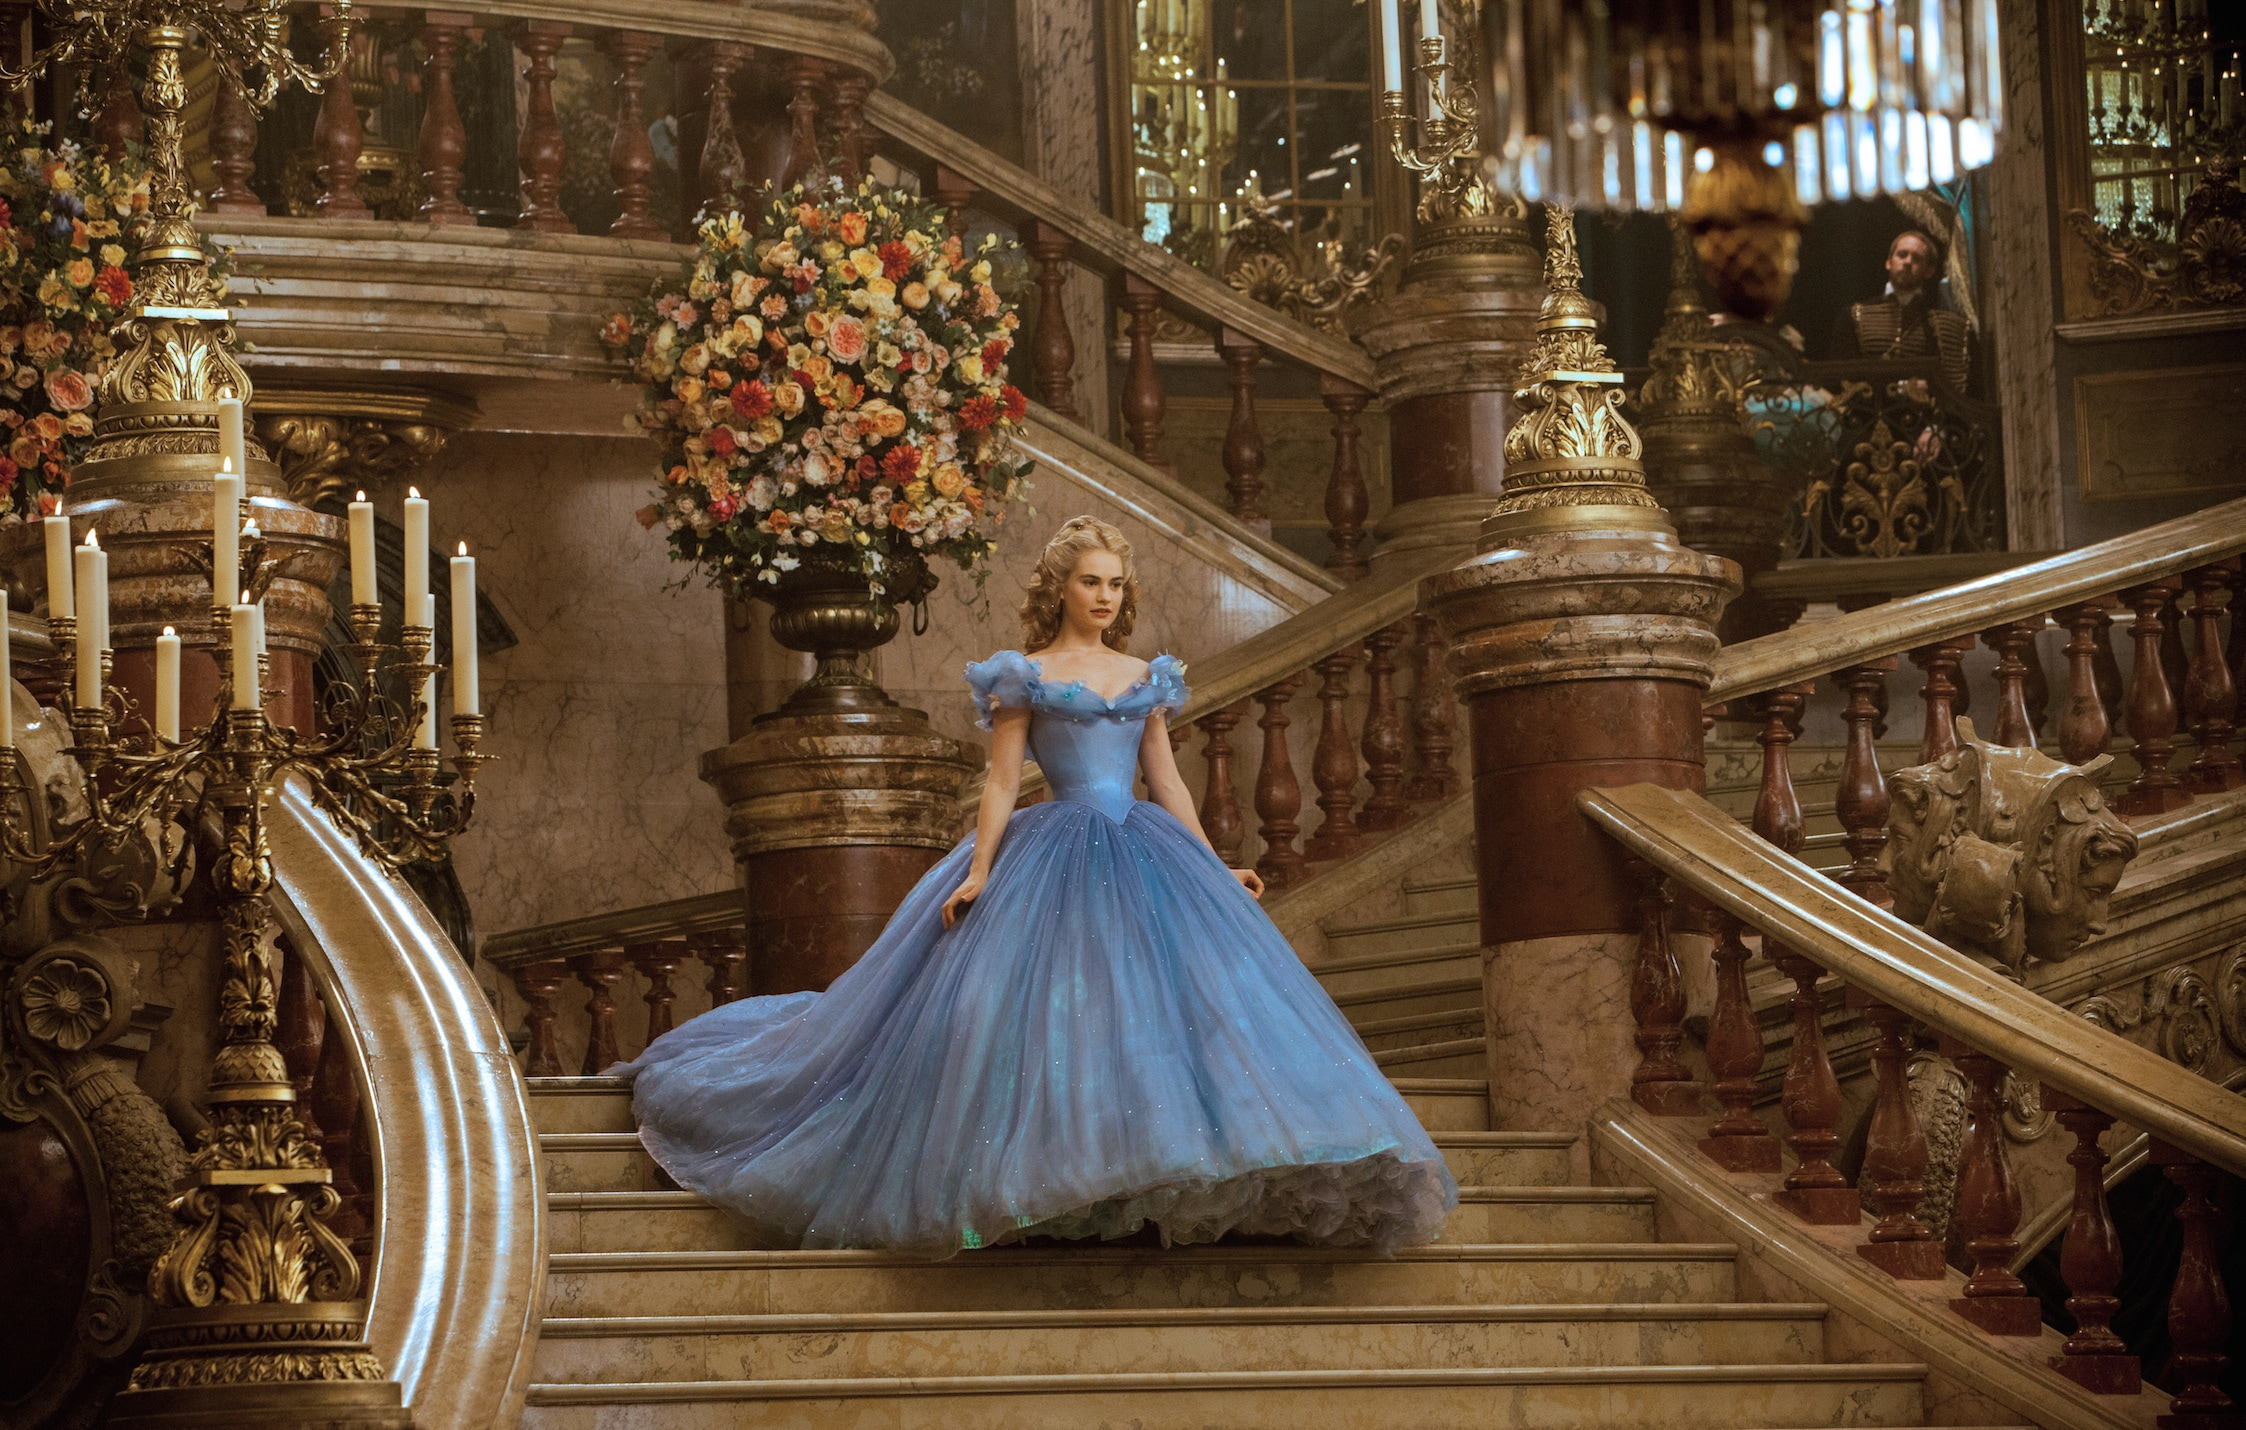 Actor Lily James (as Cinderella) walking down a staircase in the movie Cinderella.